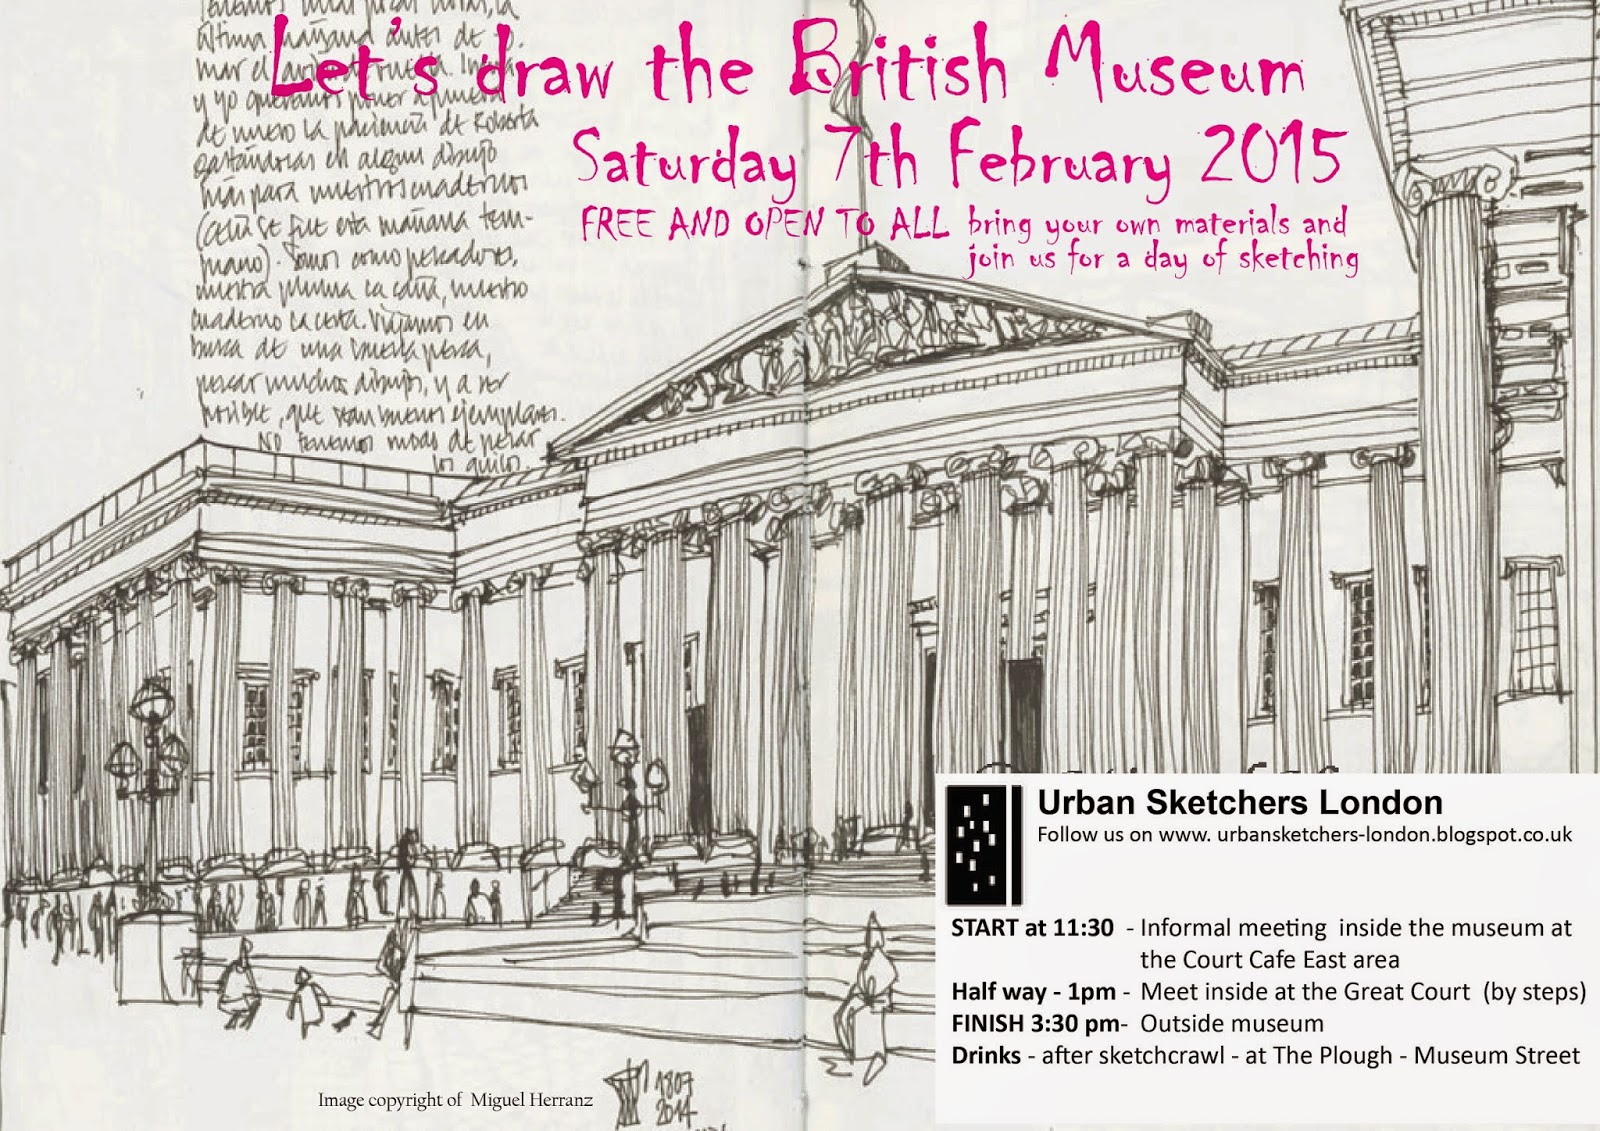 1600x1131 Urban Sketchers London Let's Draw The British Museum